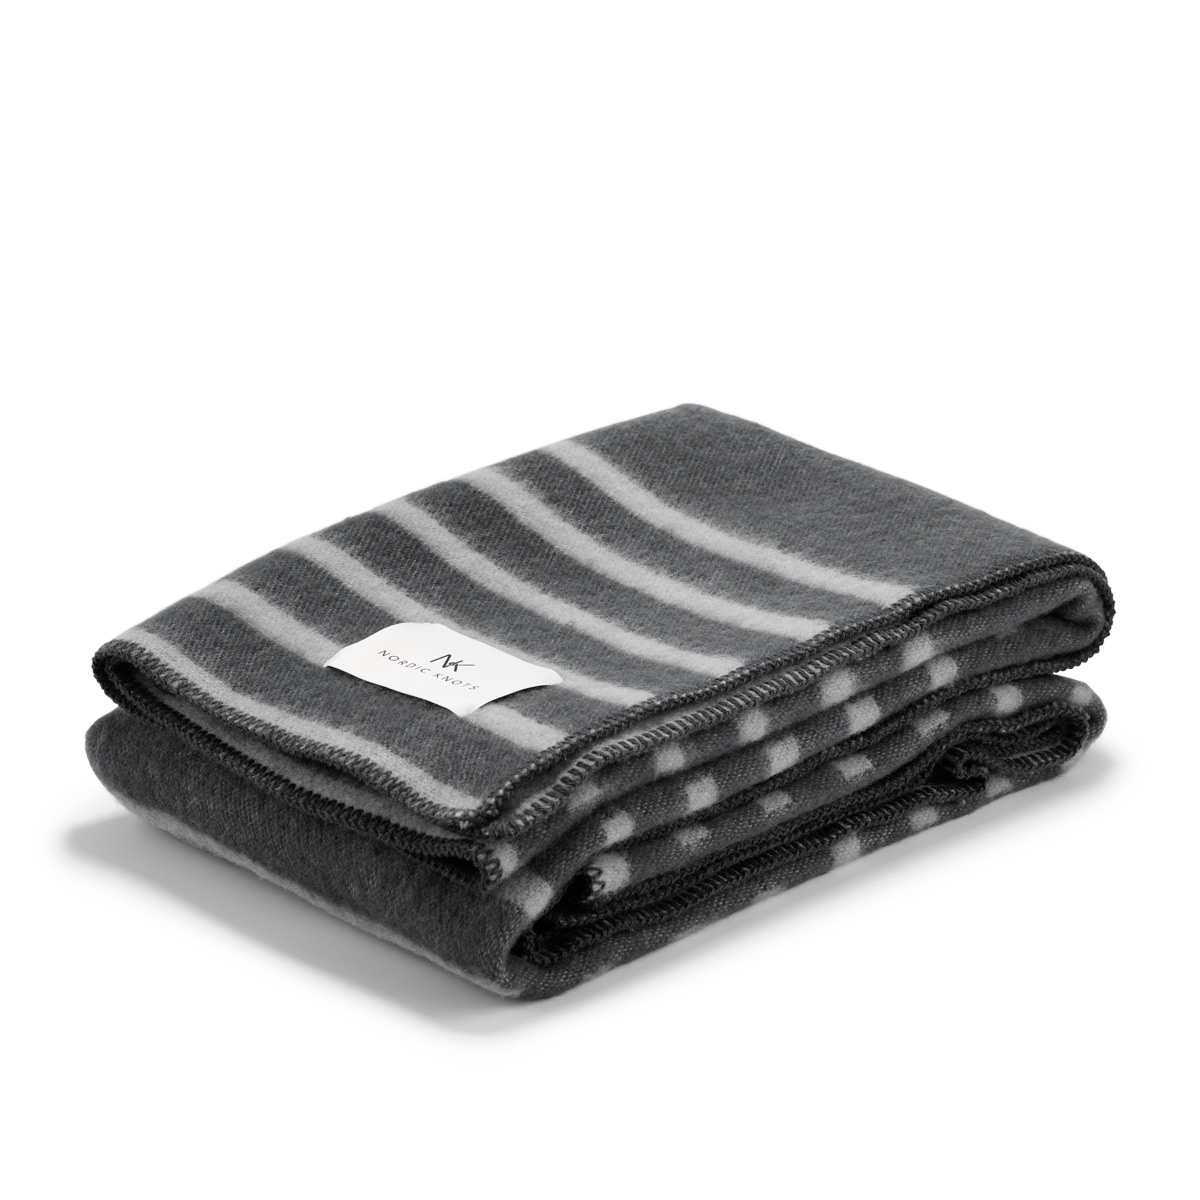 Wool blanket Classic in color steel folded neatly.